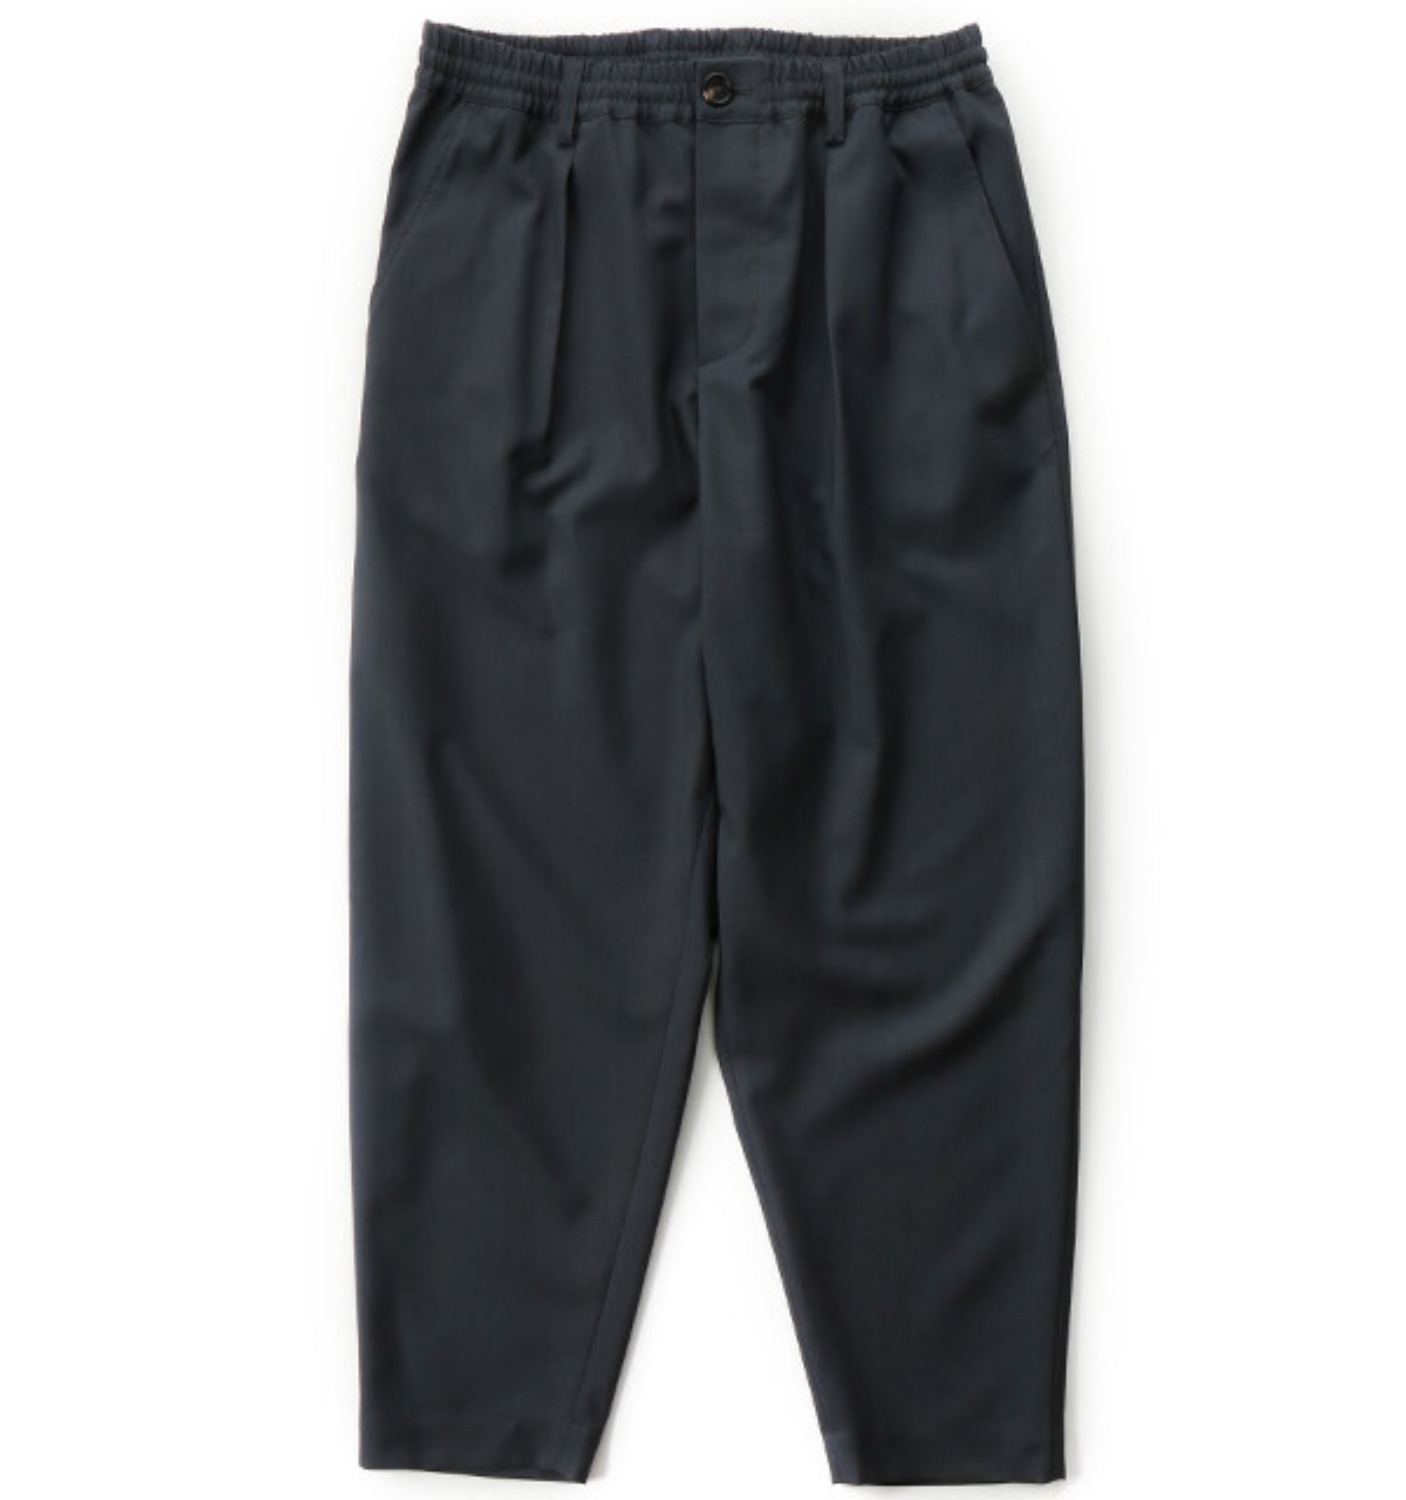 TROPICAL WOOL PANTS CHARCOAL